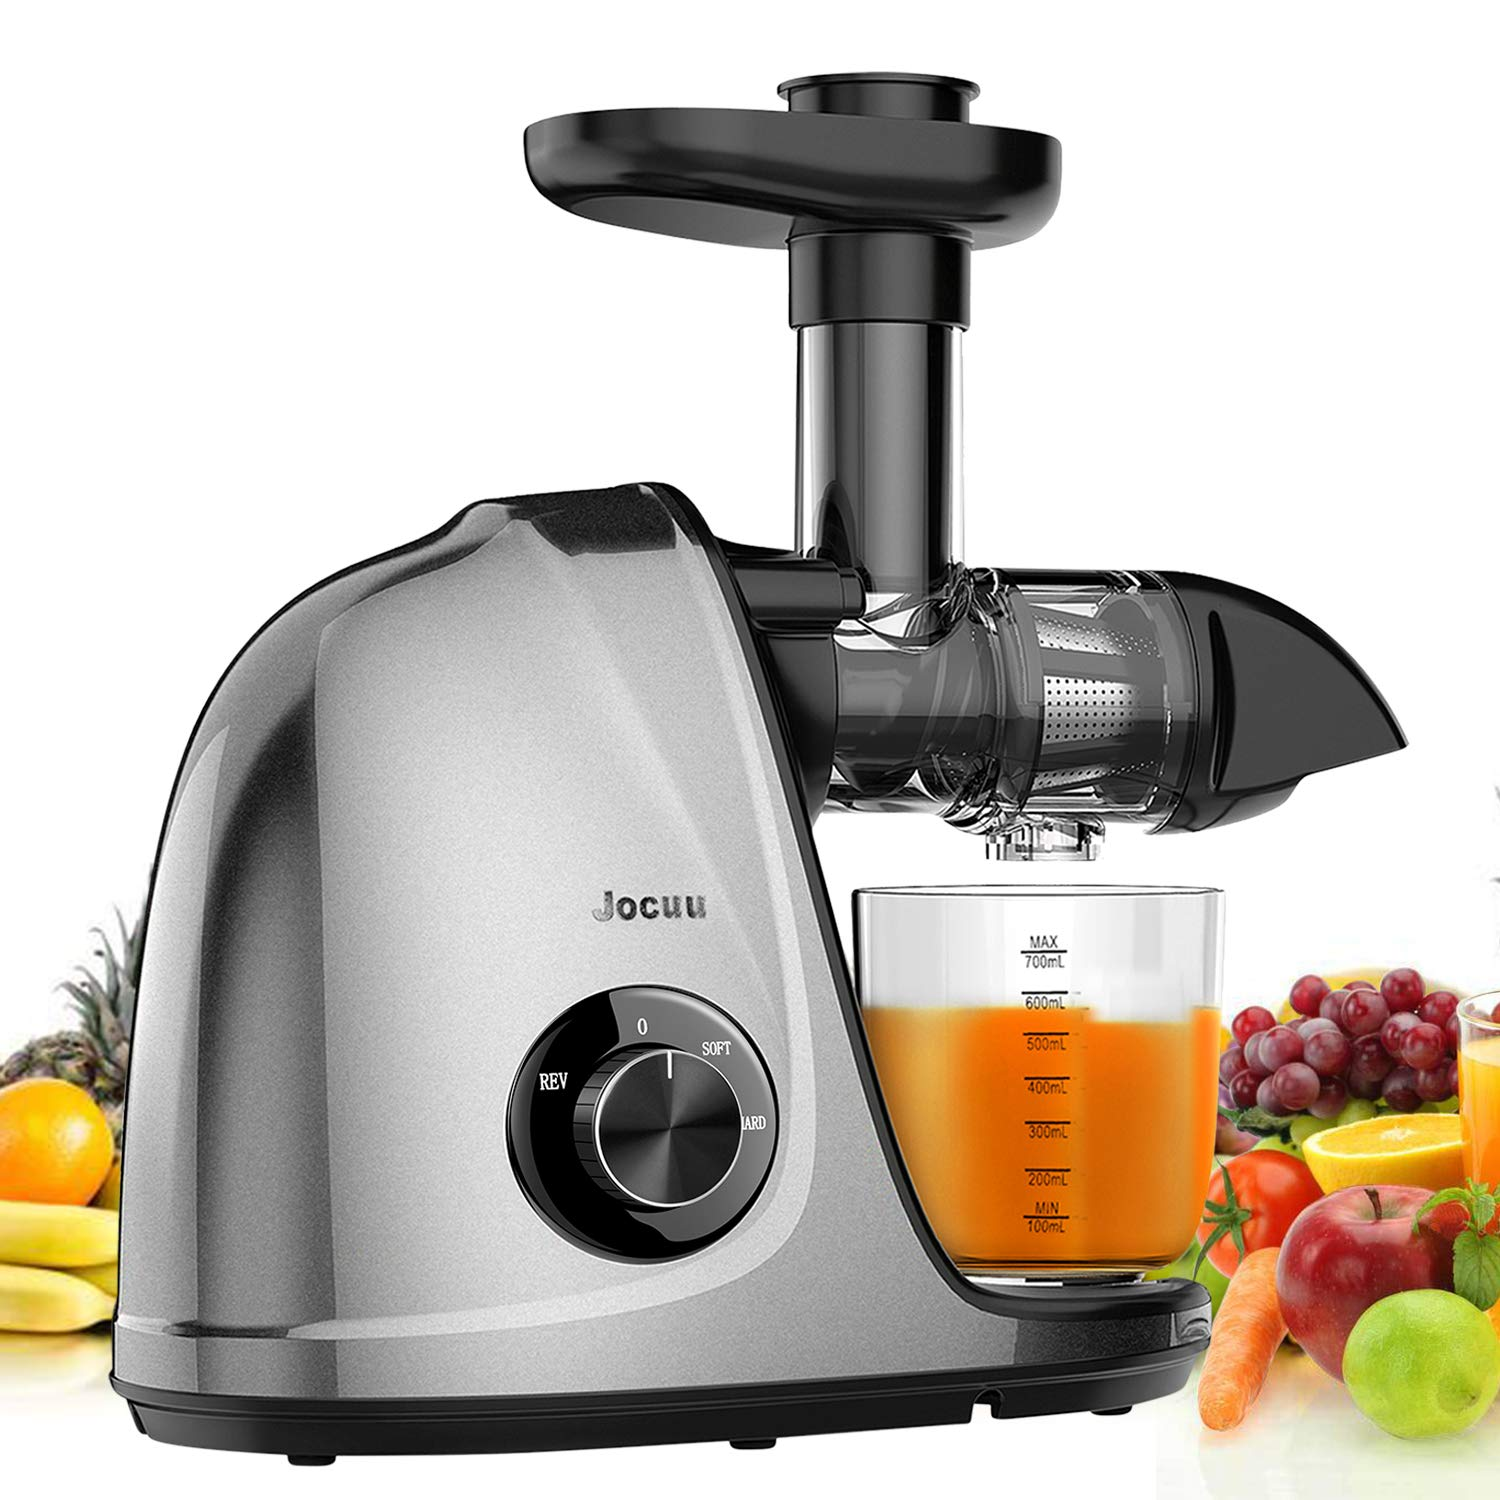 Juicer Machines, Jocuu Slow Juicer Masti- Buy Online in Pakistan at  Desertcart